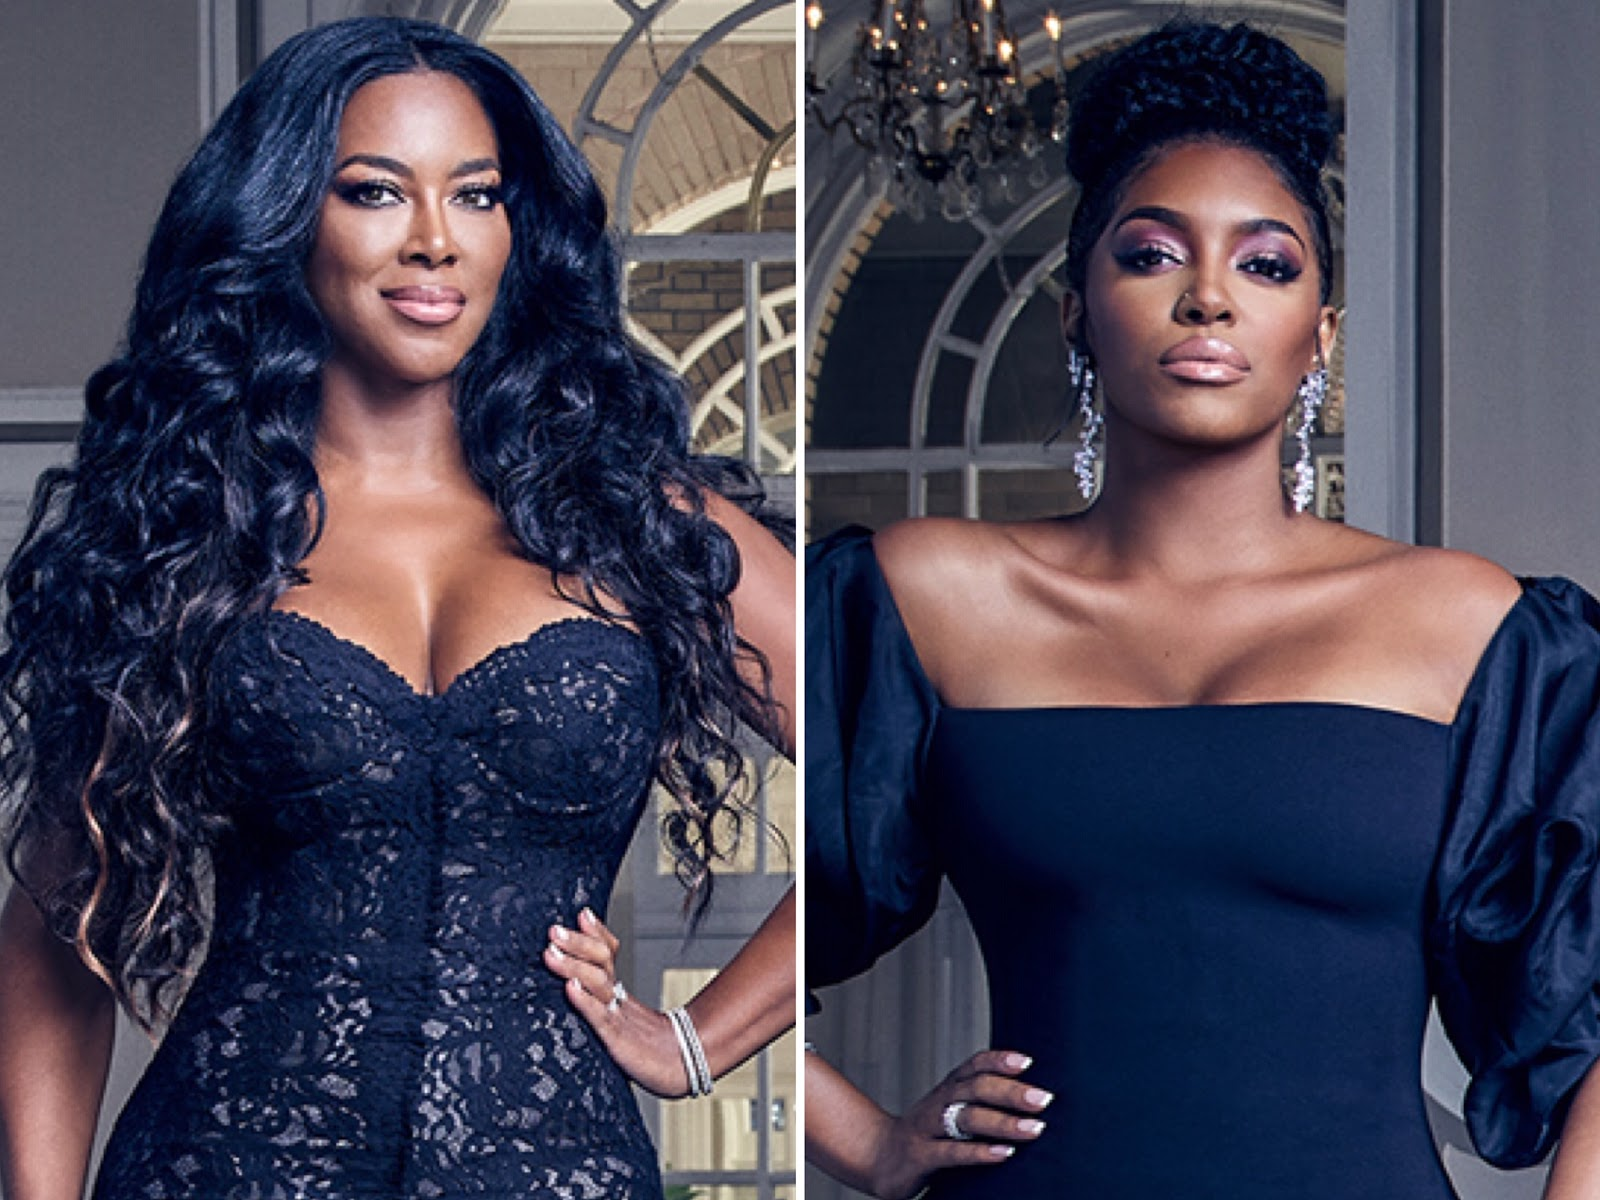 Kenya Moore Seemingly Agrees With Instagram Troll That Porsha Williams Blm Activism Is For Rhoa Storyline Porsha Claps Back And Kenya Responds